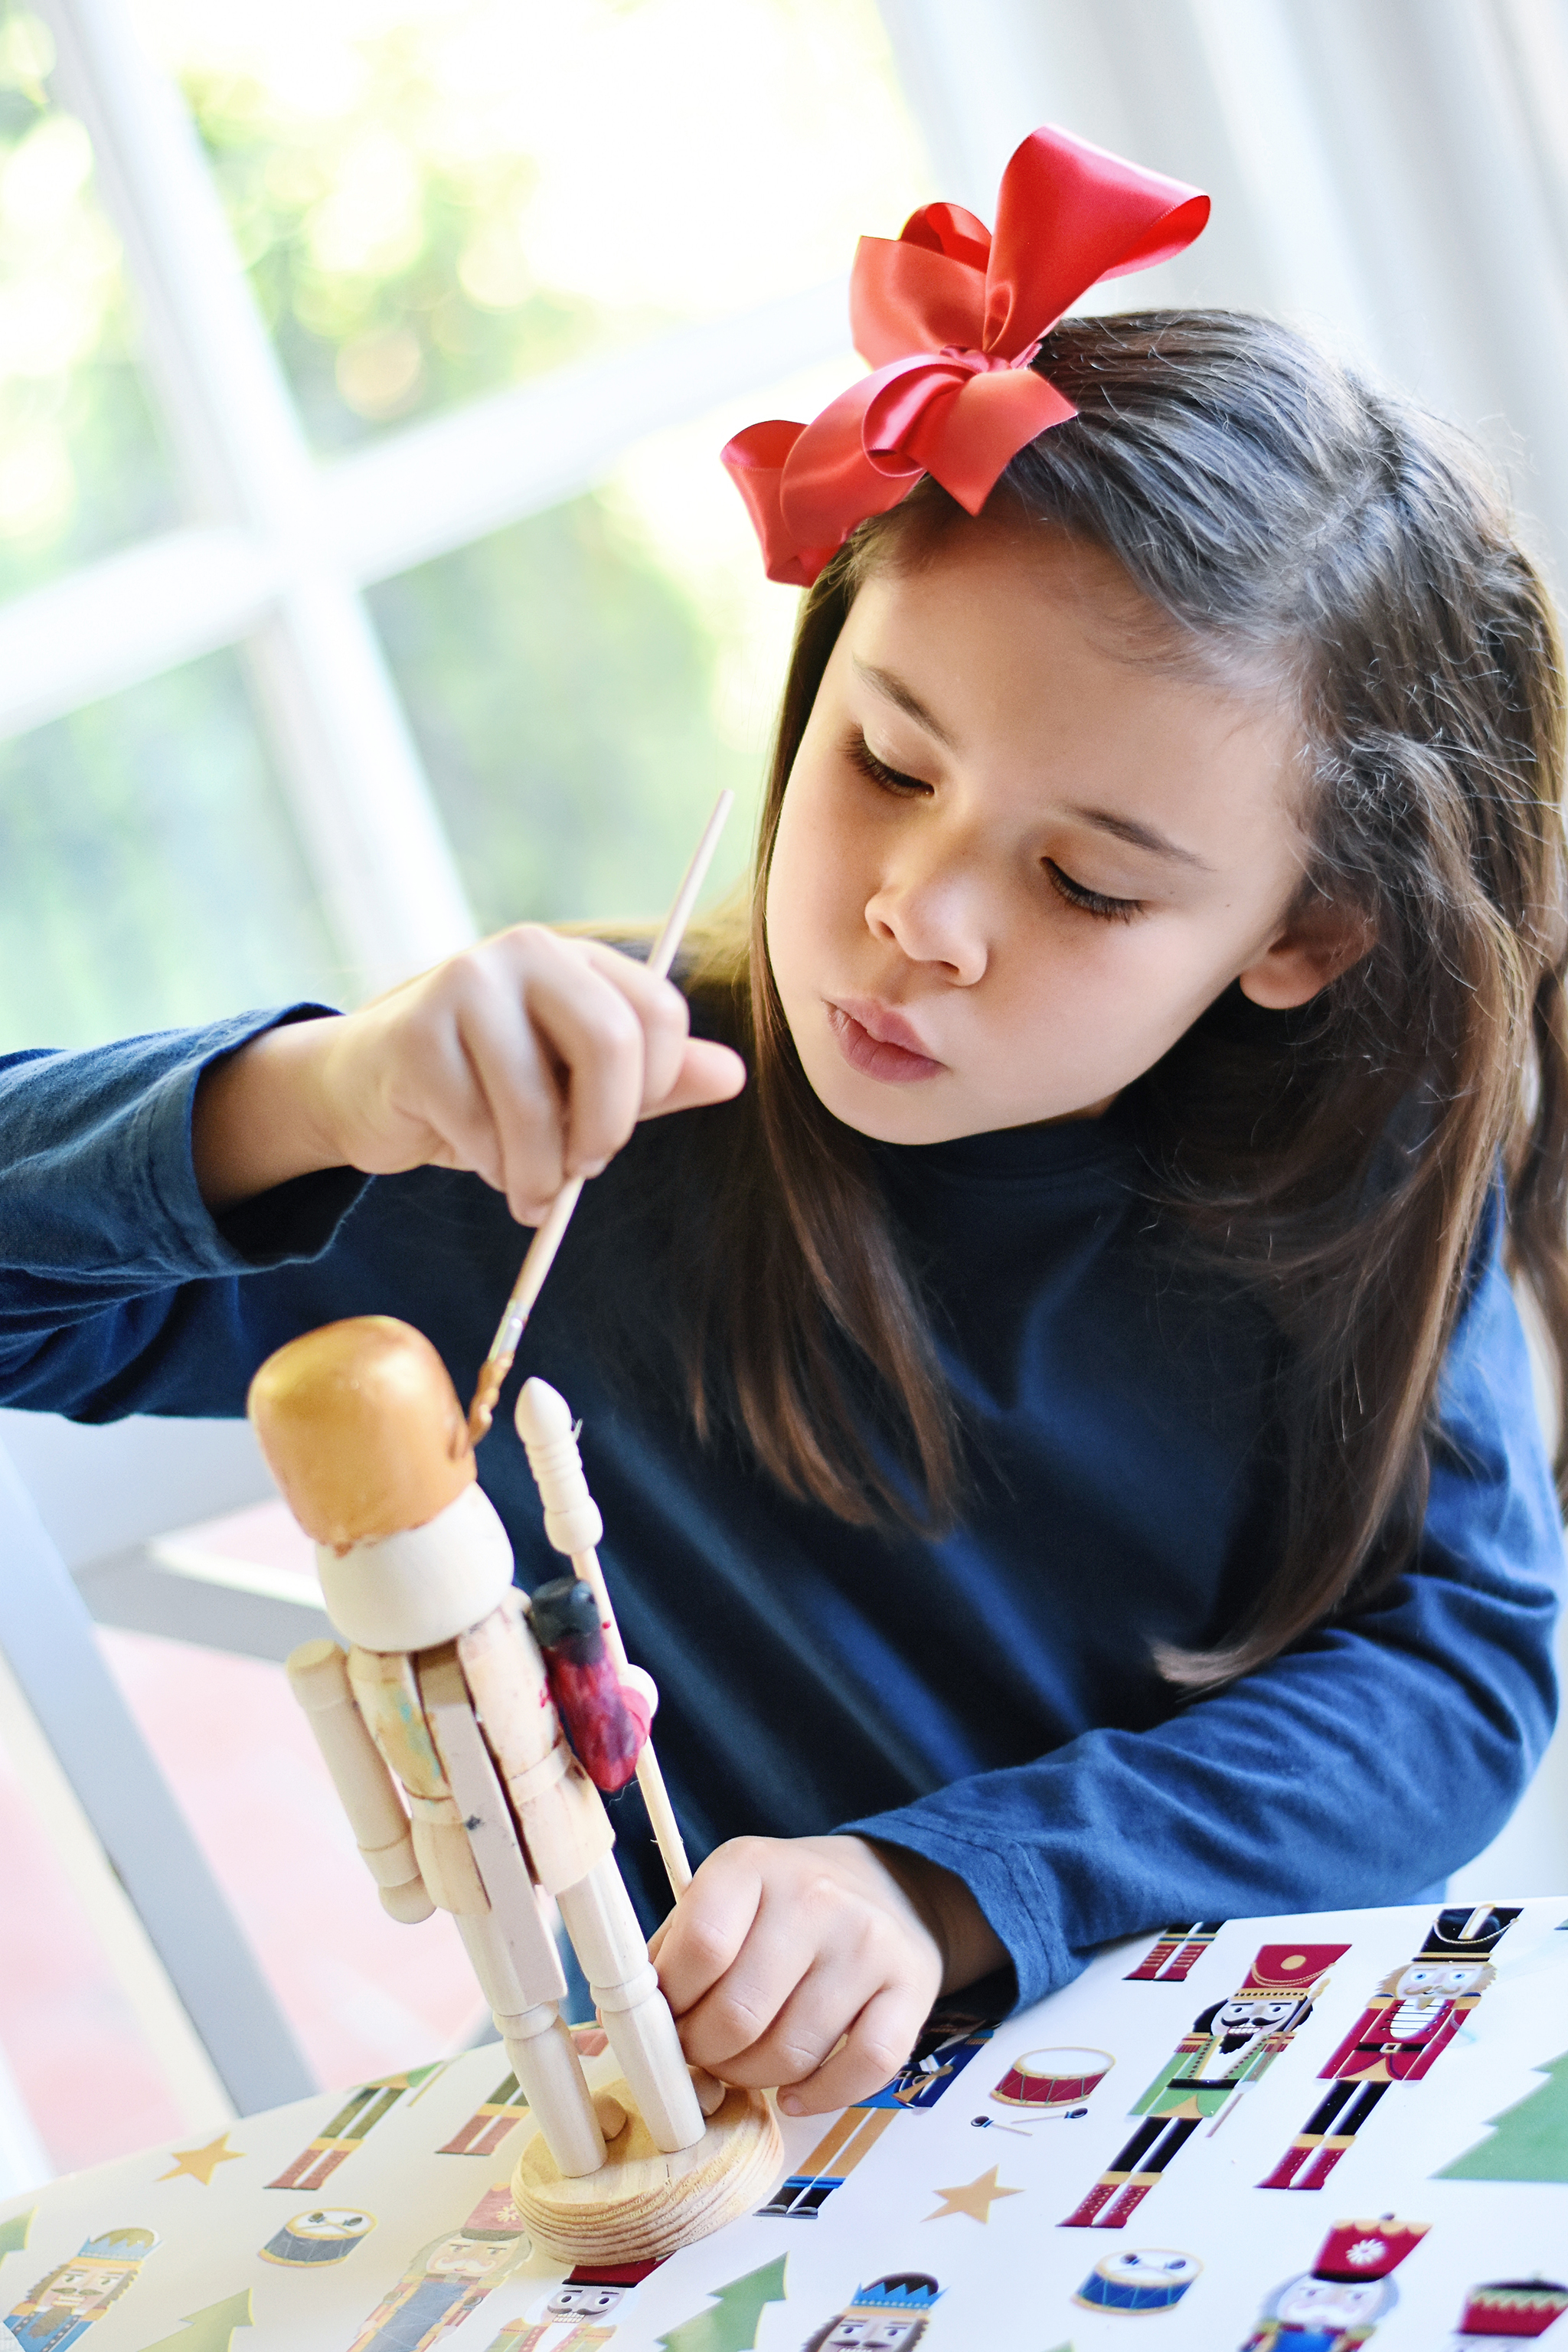 Paint Your Own Nutcrackers make great party activities!